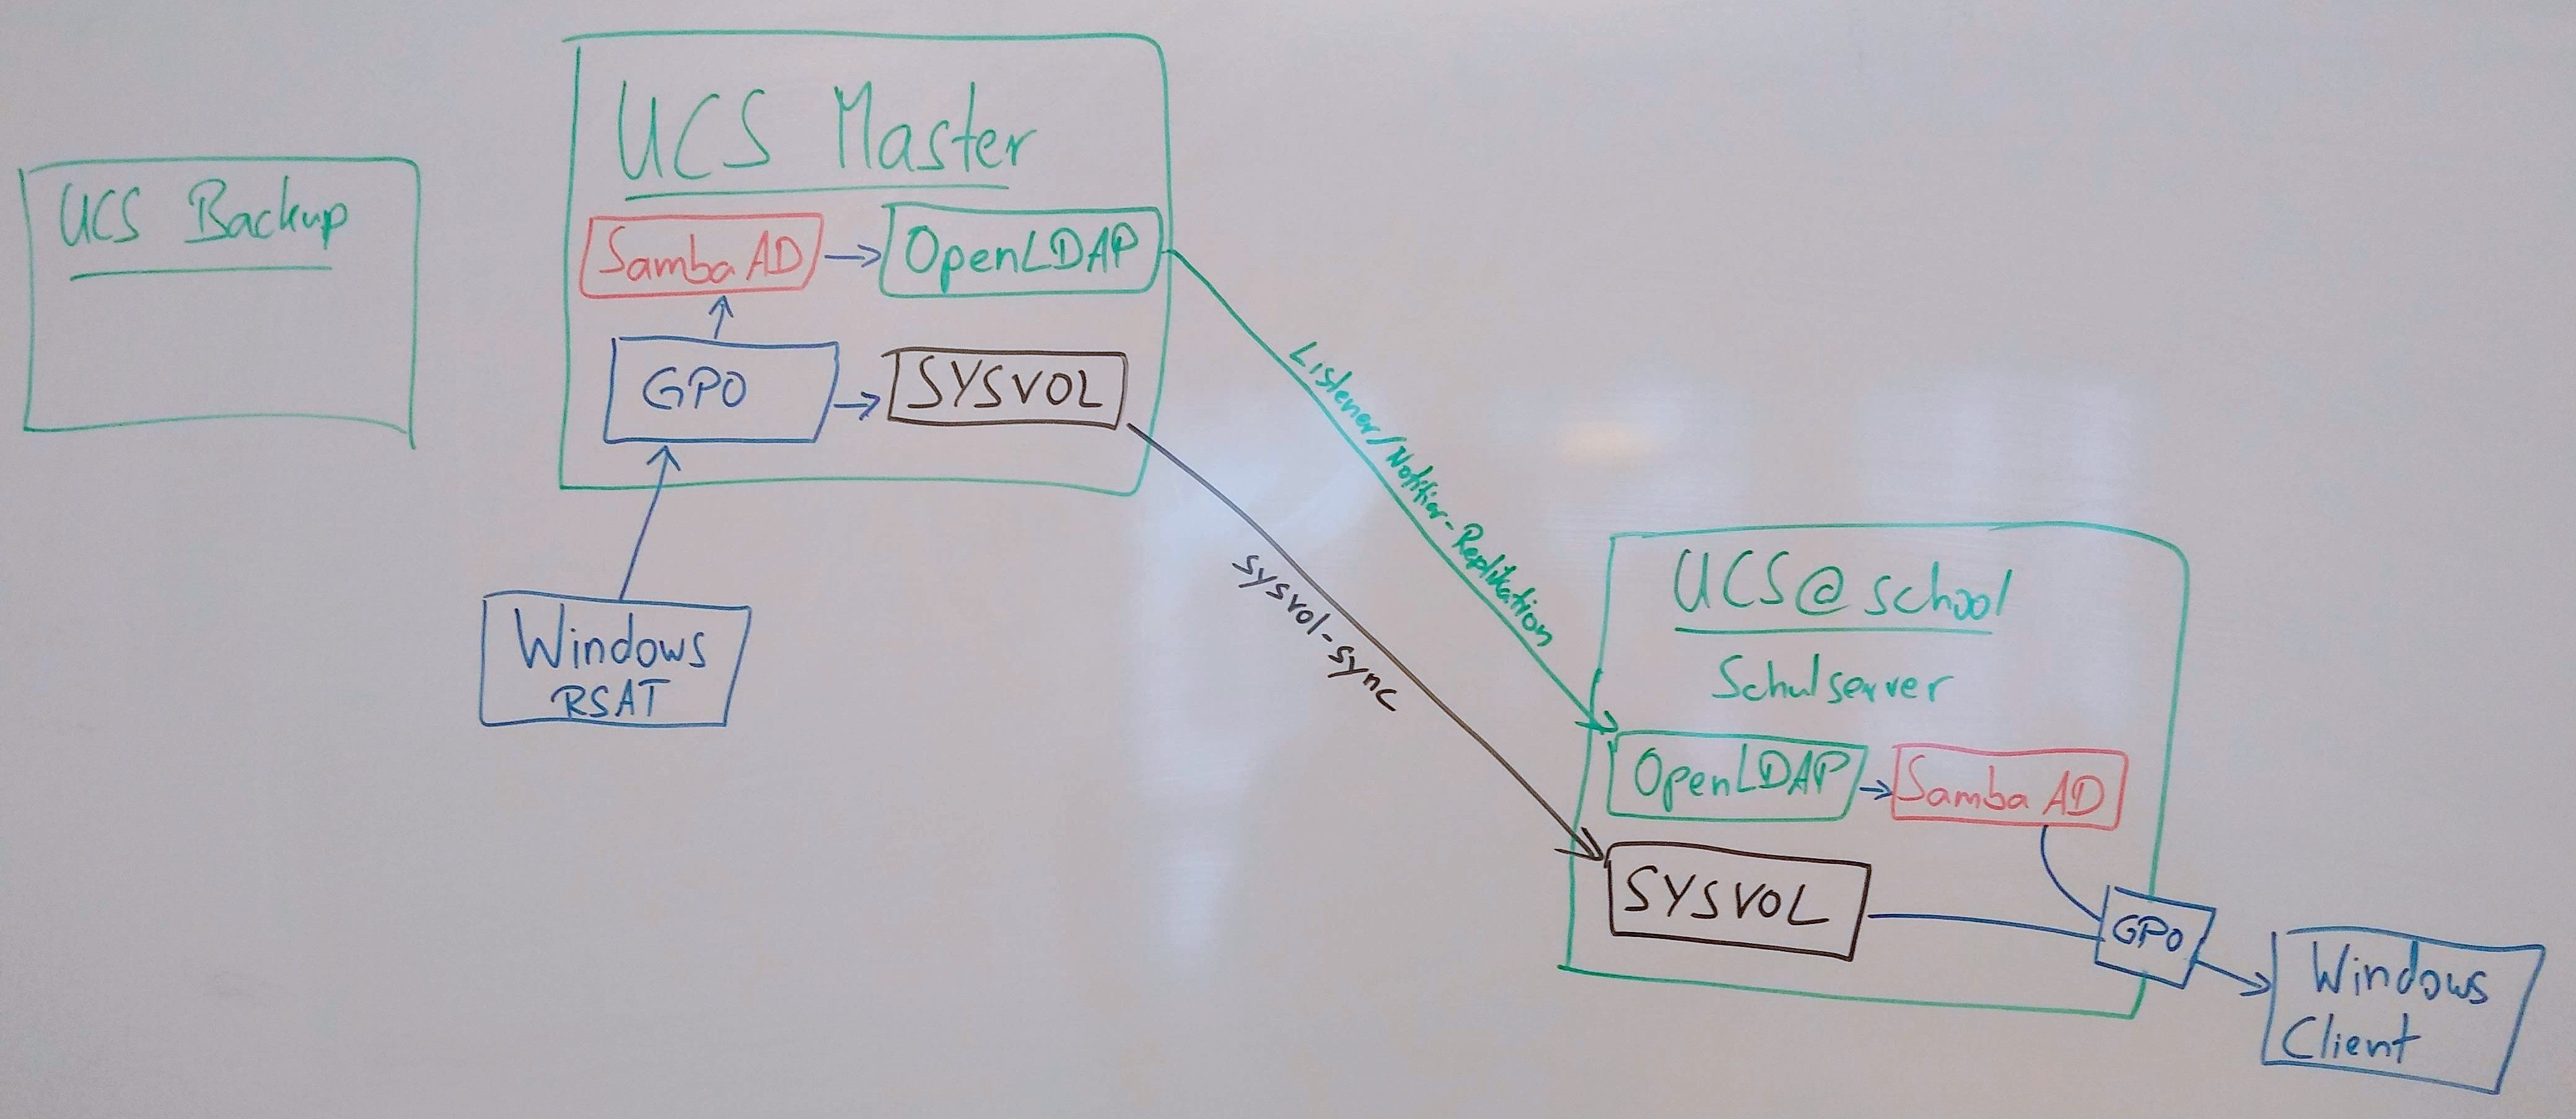 Q&A: How GPOs and SYSVOL are working together in UCS@school